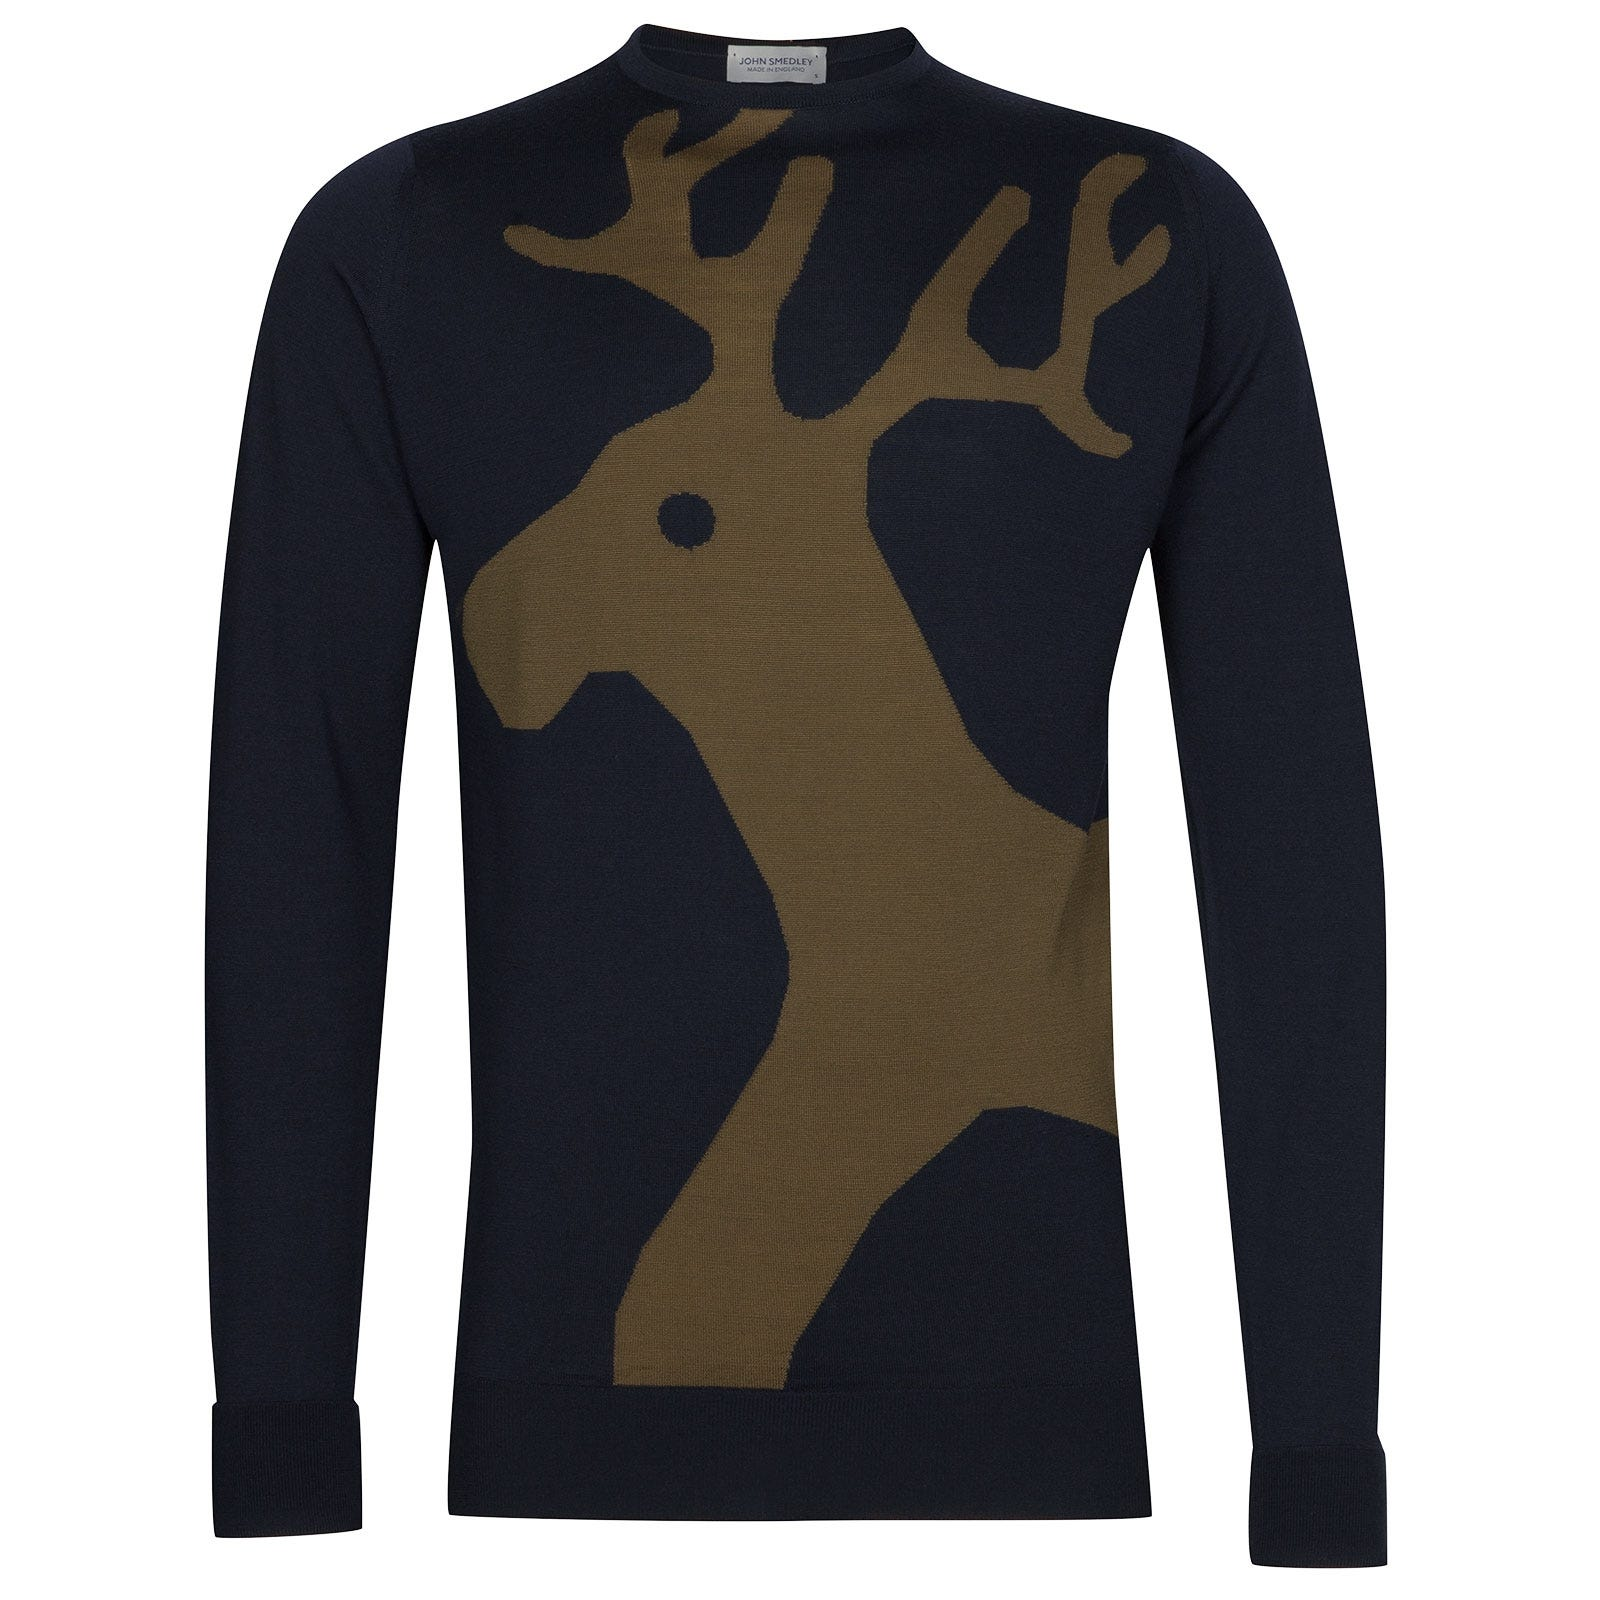 John Smedley Raoul Extra Fine Merino Pullover in Racing Green-L